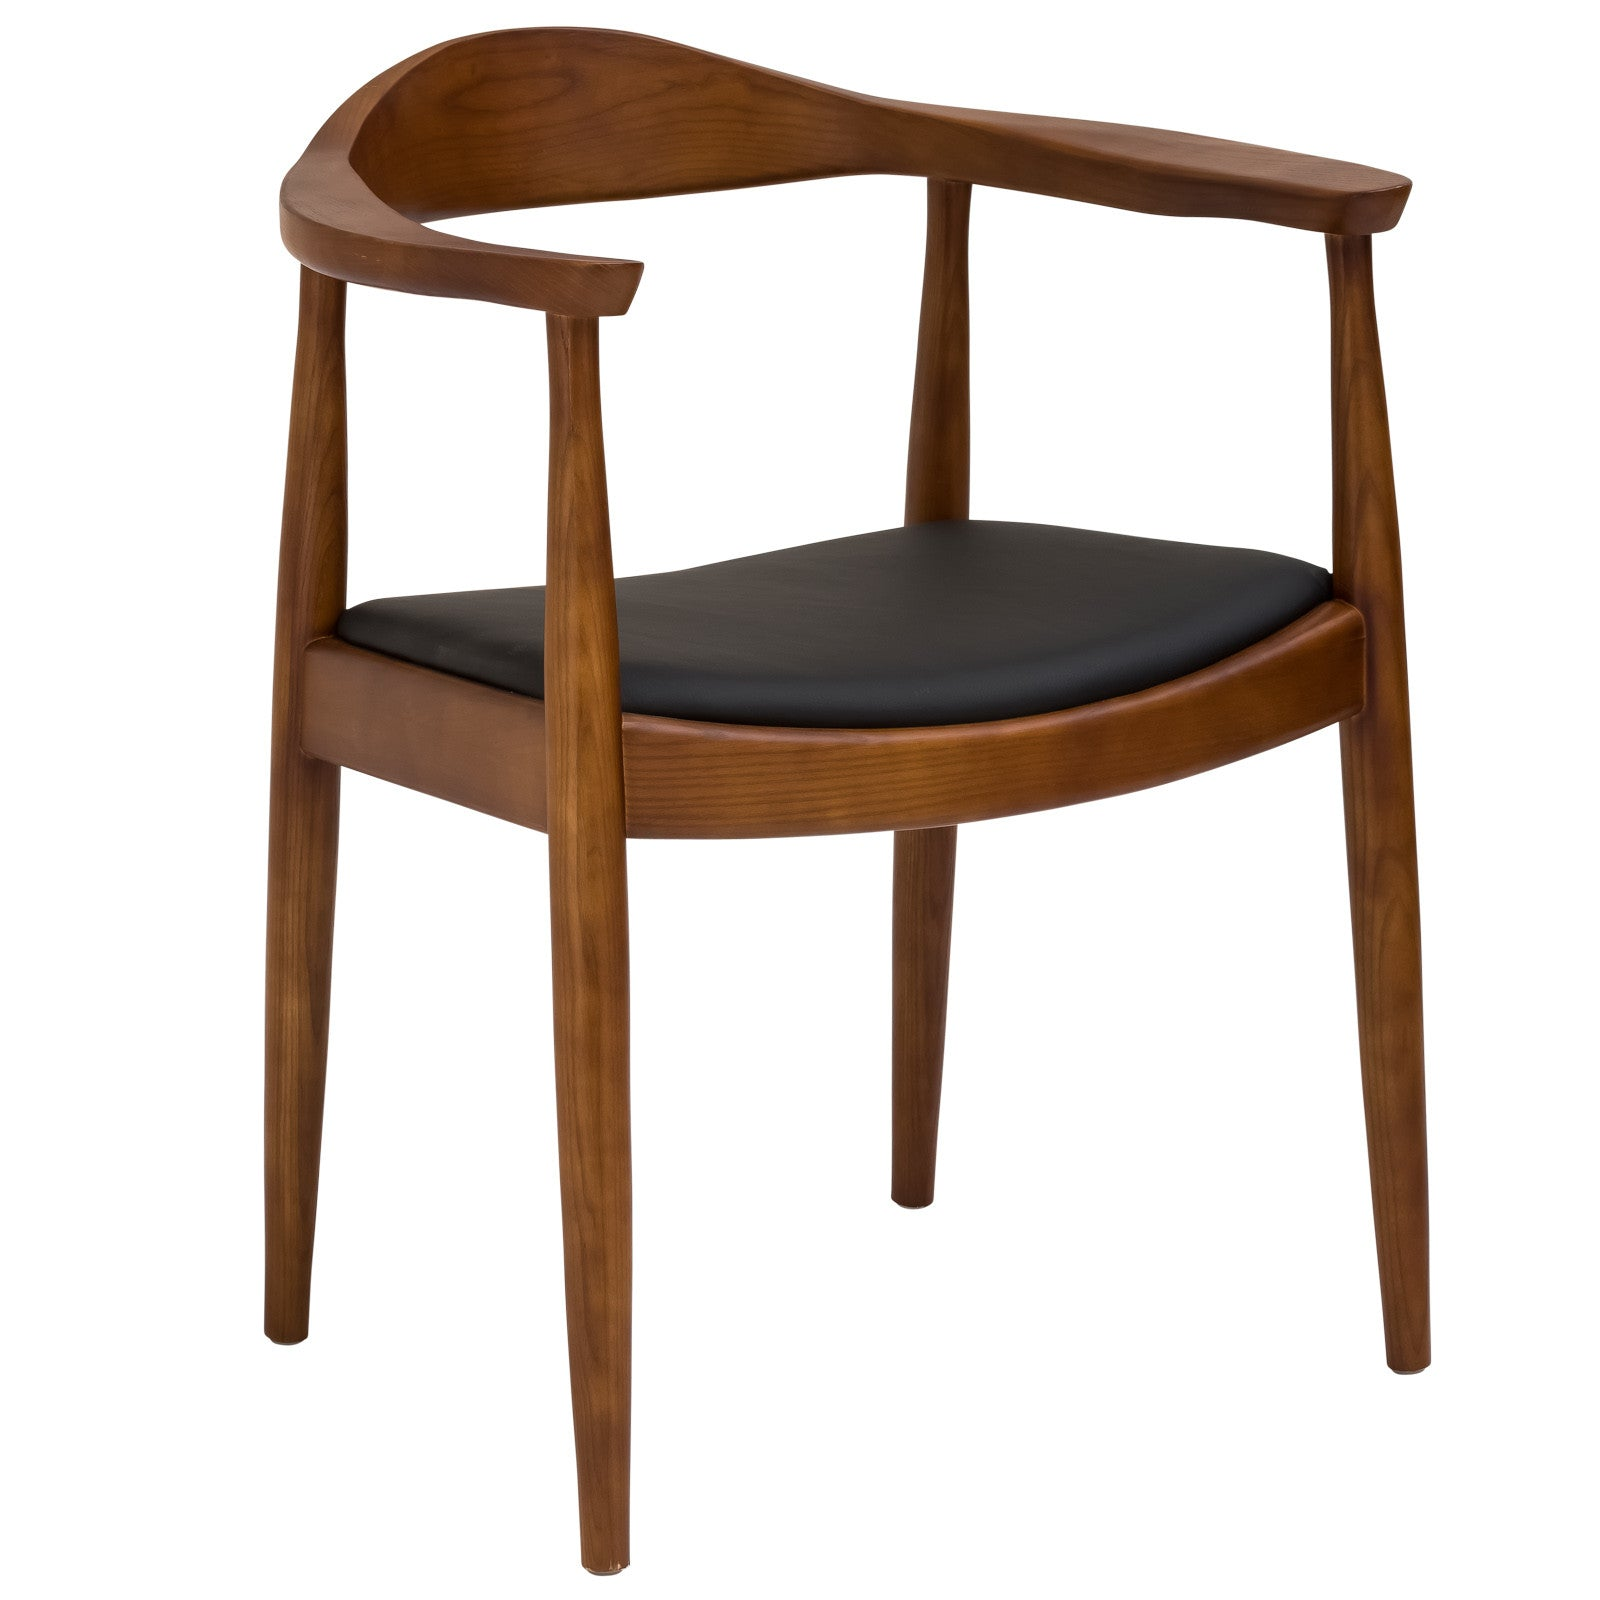 Charmant Hans Wegner Round Chair Reproduction   The Modern Source   1 ...